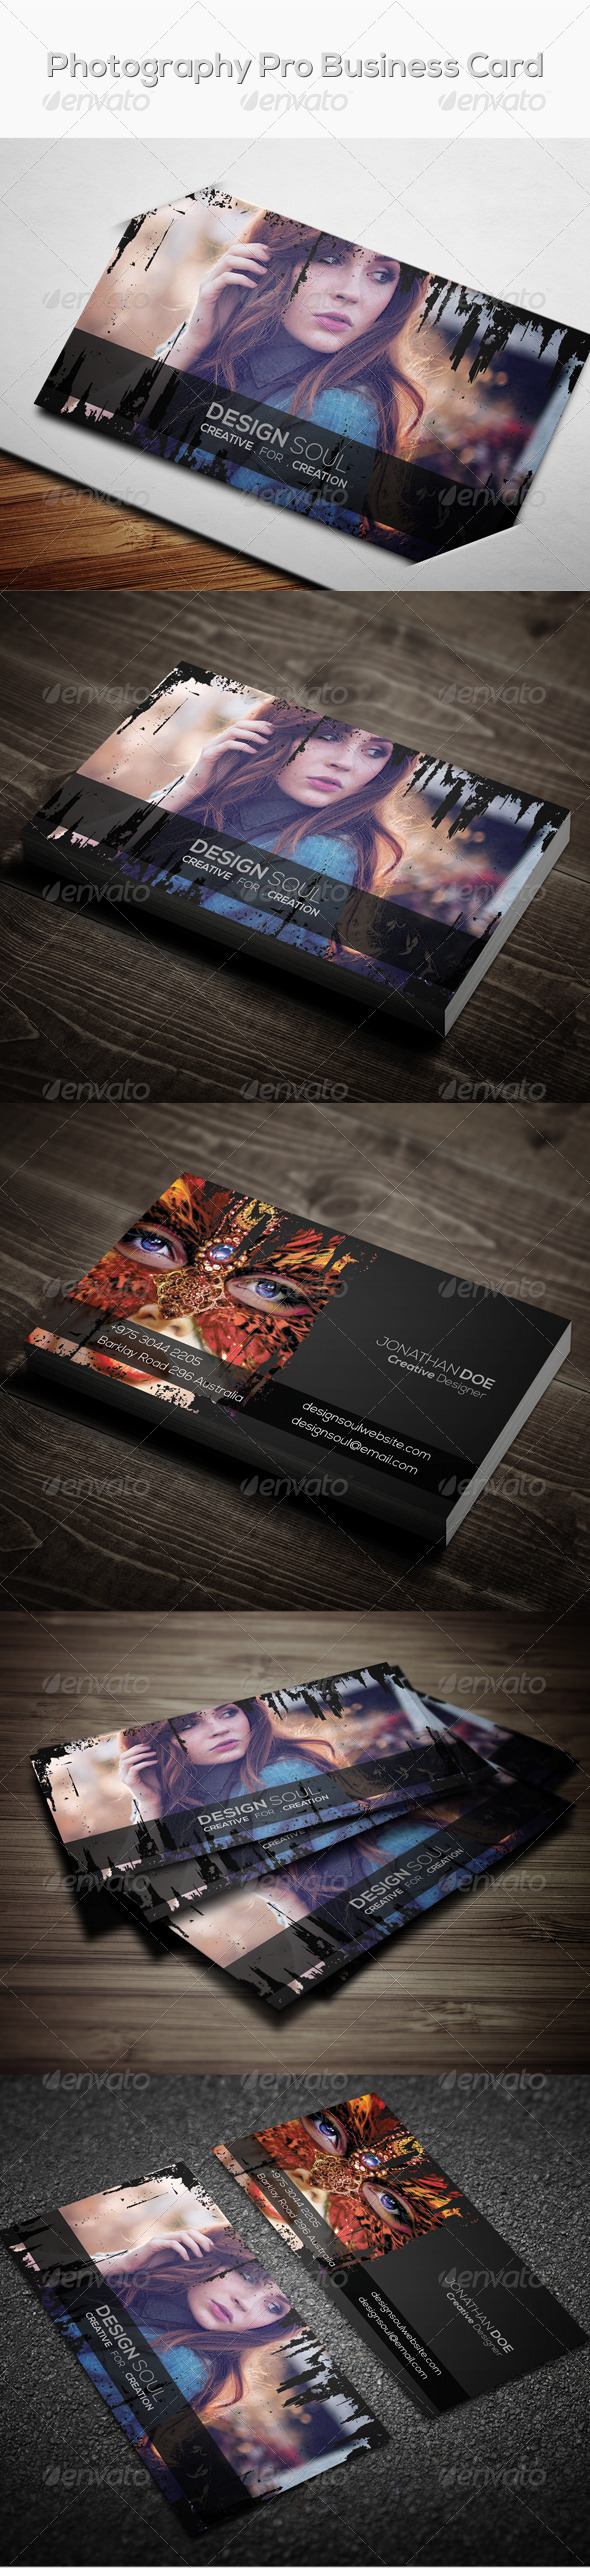 GraphicRiver Photography Pro Business Card 7600022